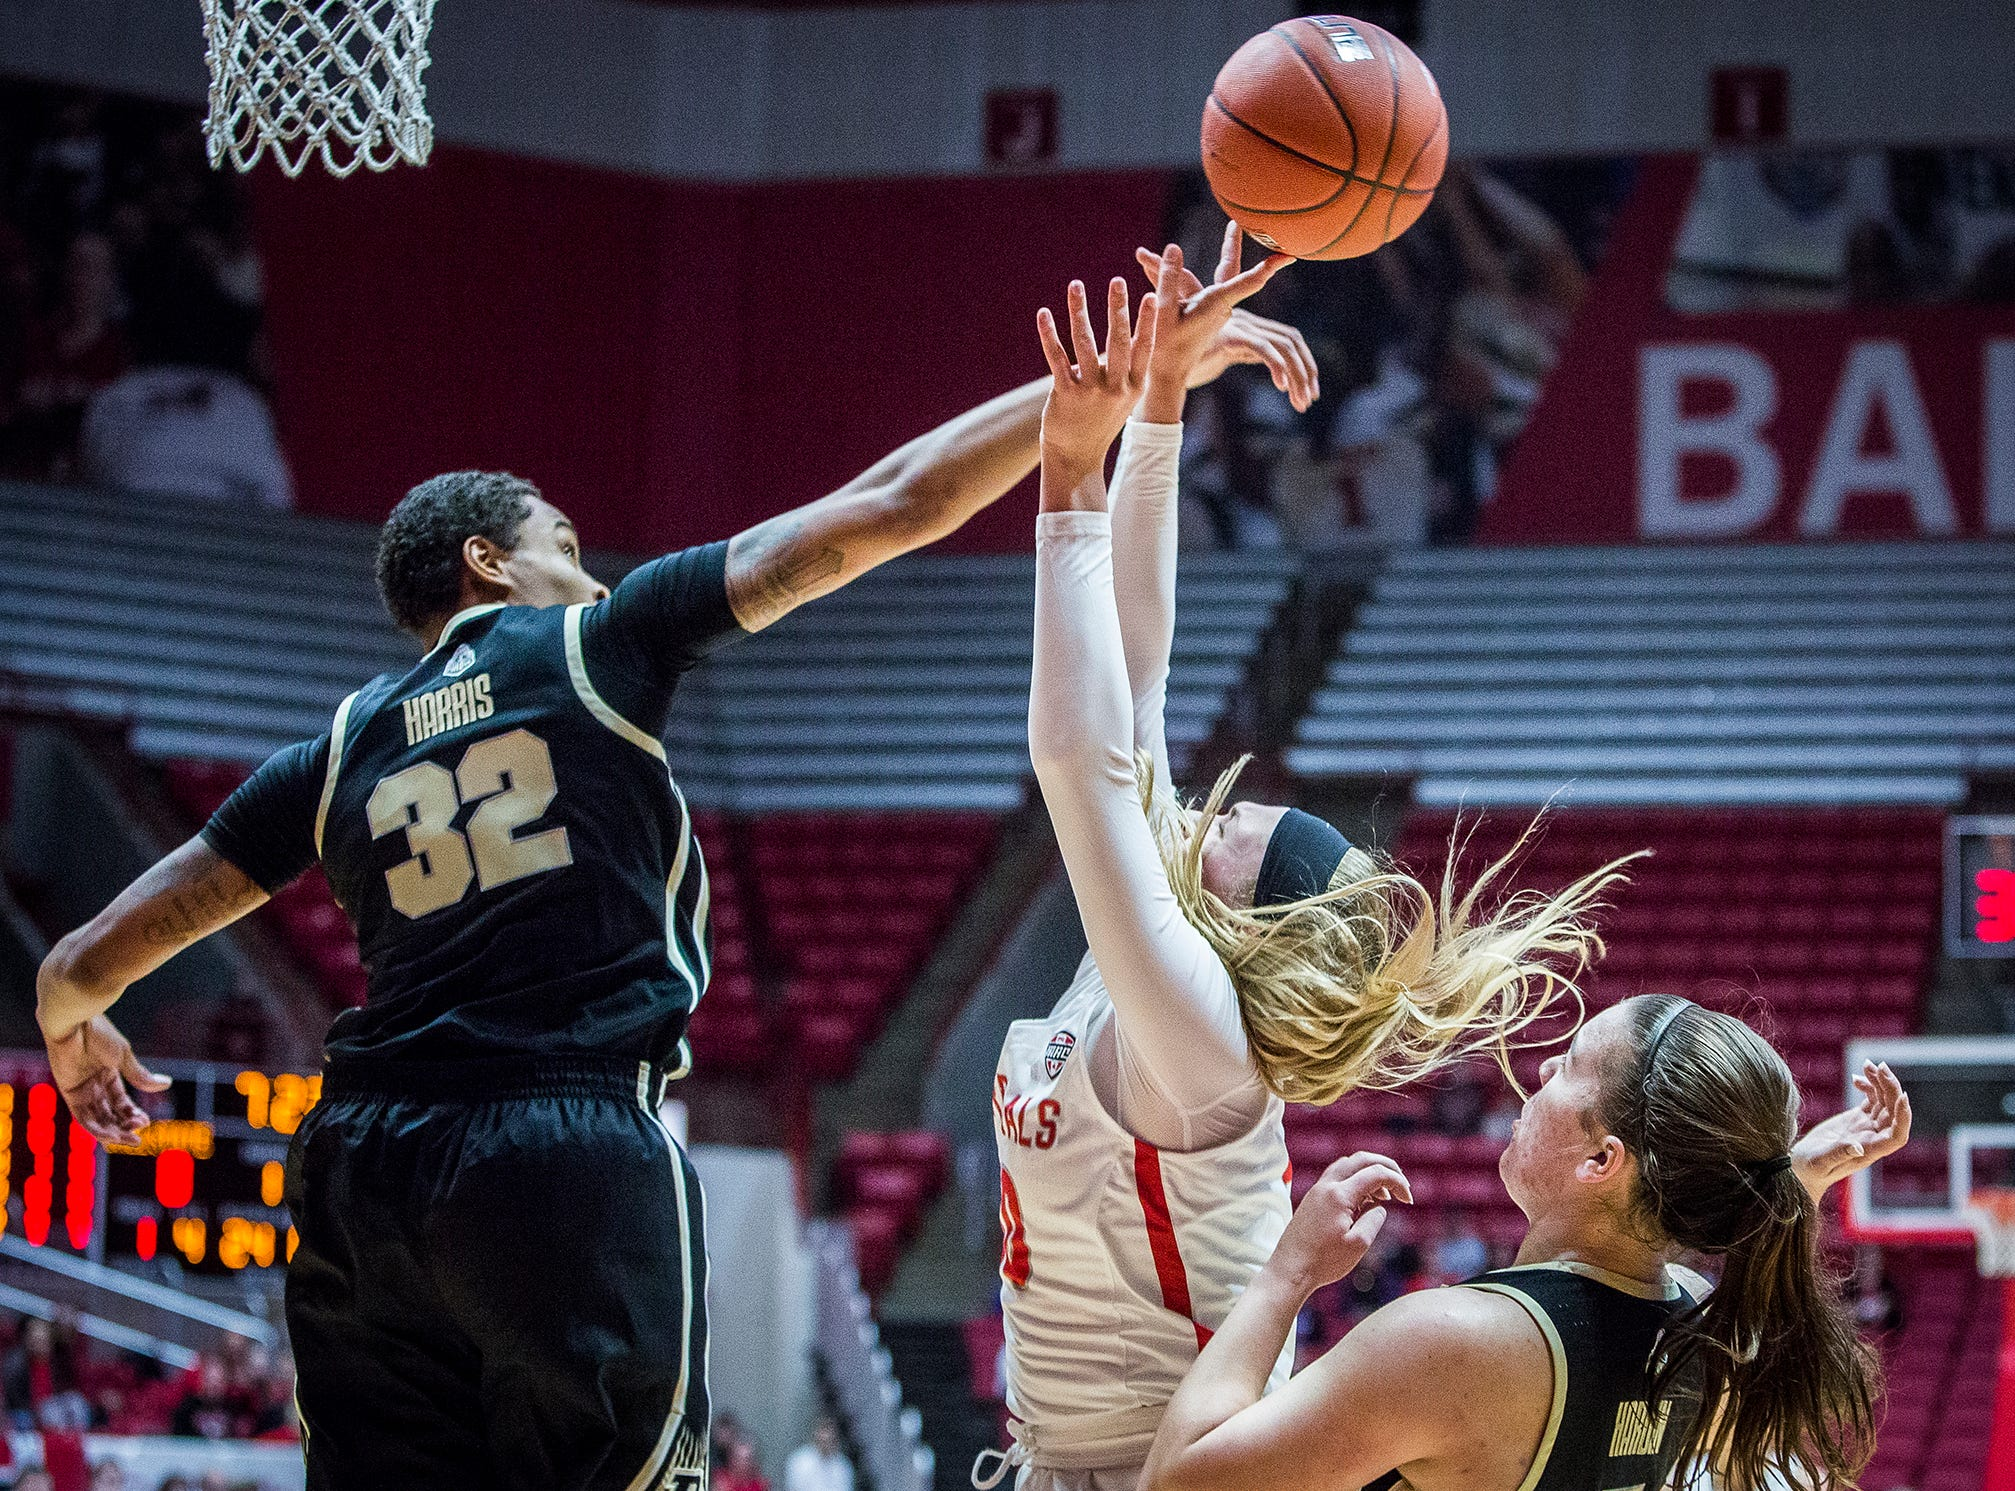 Purdue's Ae'Rianna Harris blocks a shot from Ball State's Anna Clephane during their game at Worthen Arena Wednesday, Nov. 7, 2018.